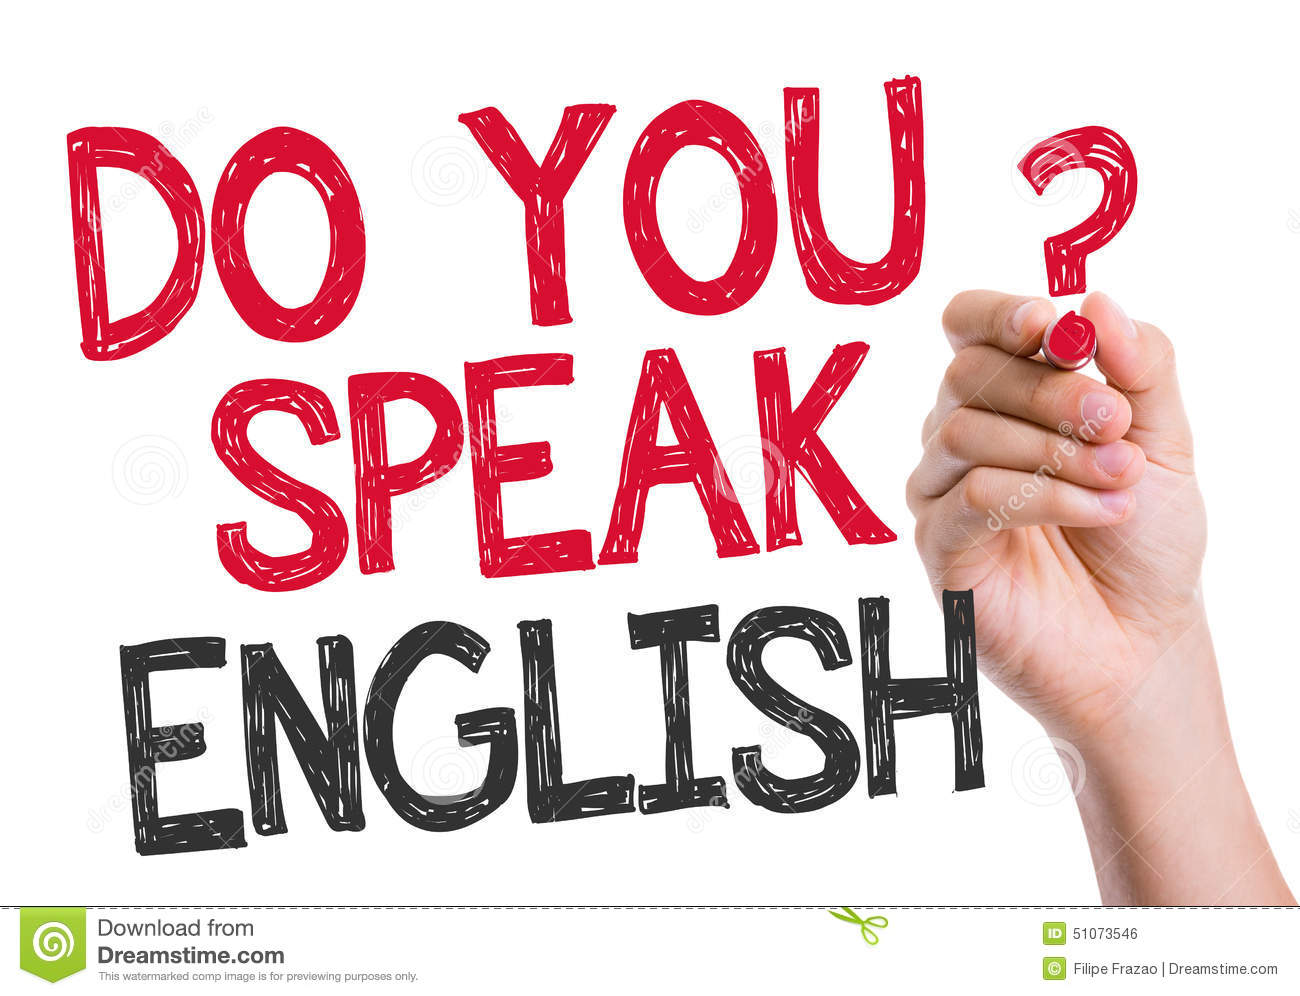 do-you-speak-english-written-wipe-board-51073546.jpg